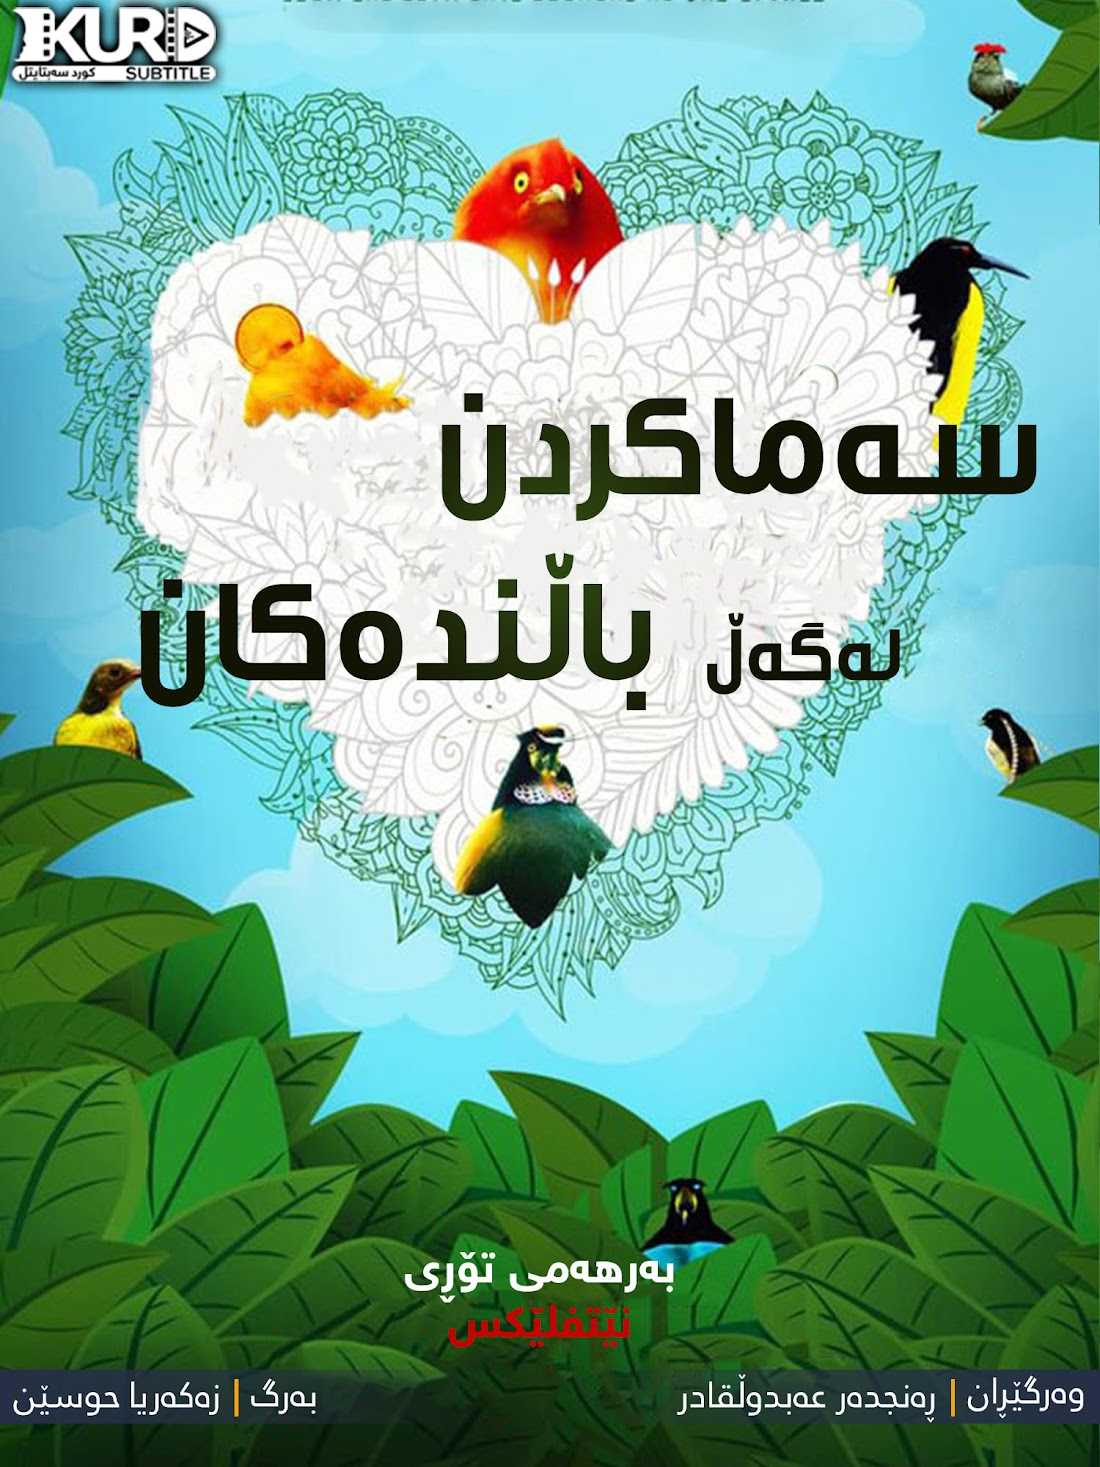 Dancing with the Birds kurdish poster